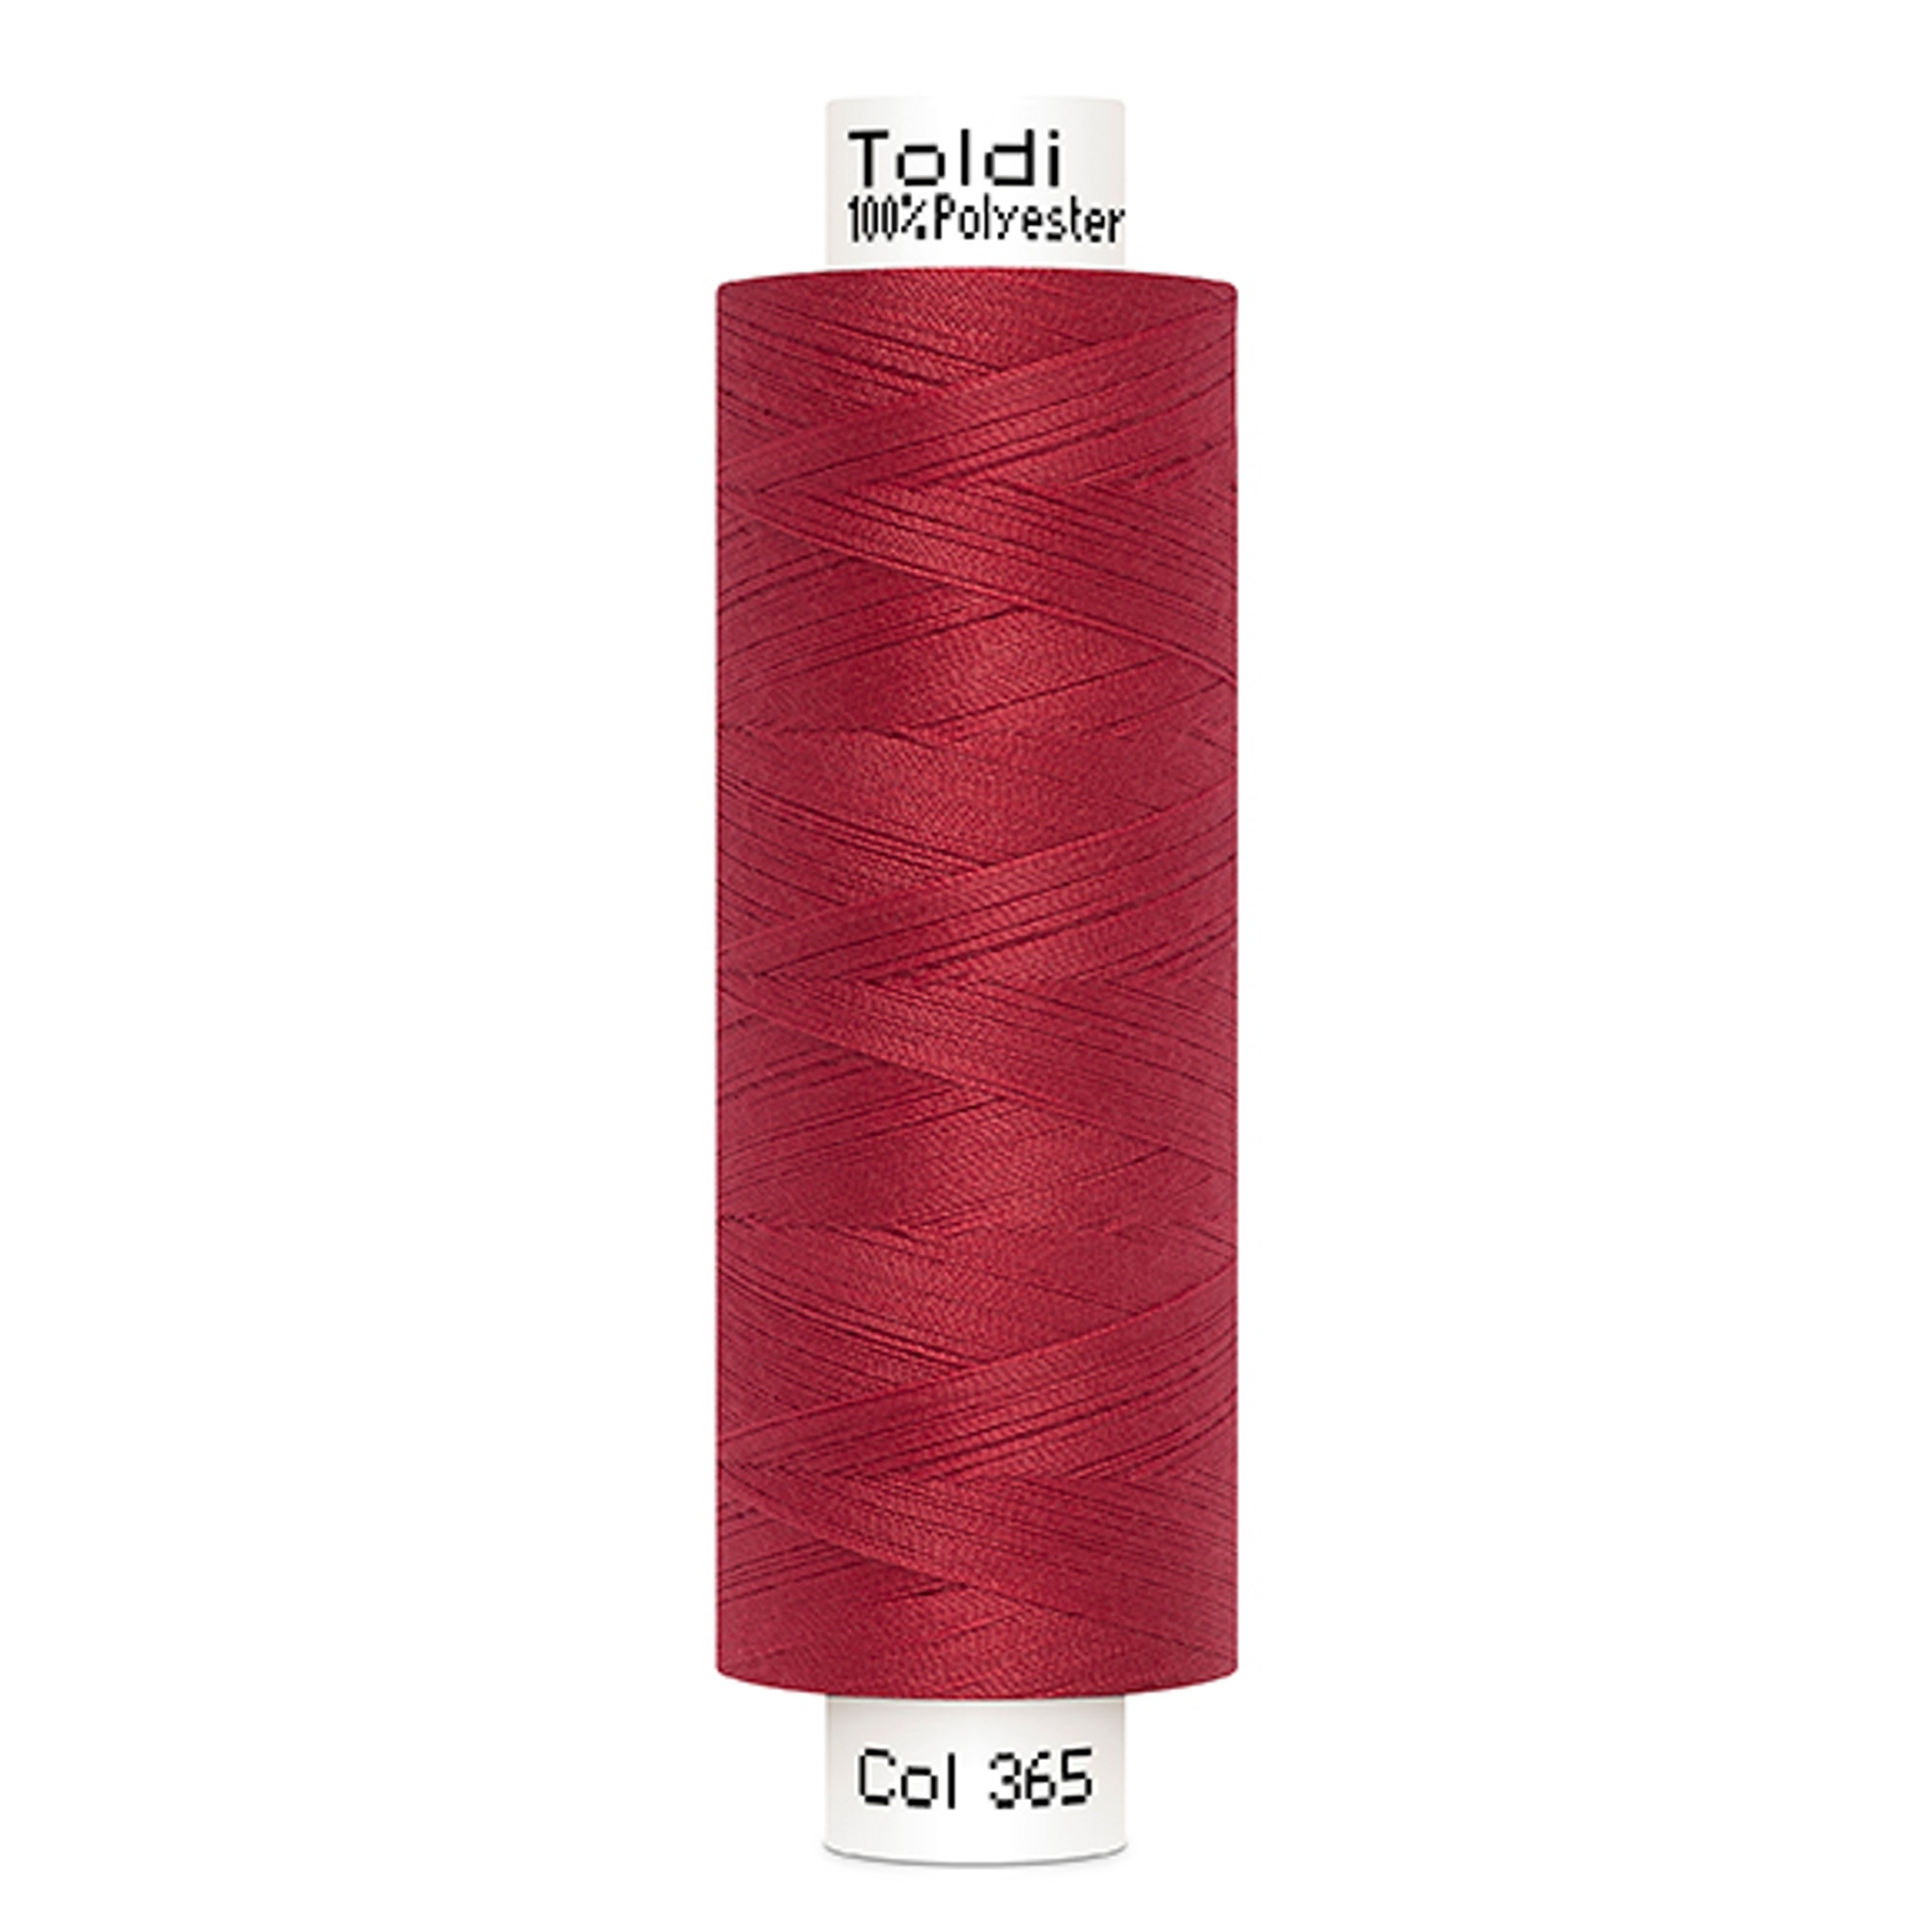 Gütermann Toldi Sewing Thread, 500 m red | 707589-365 |